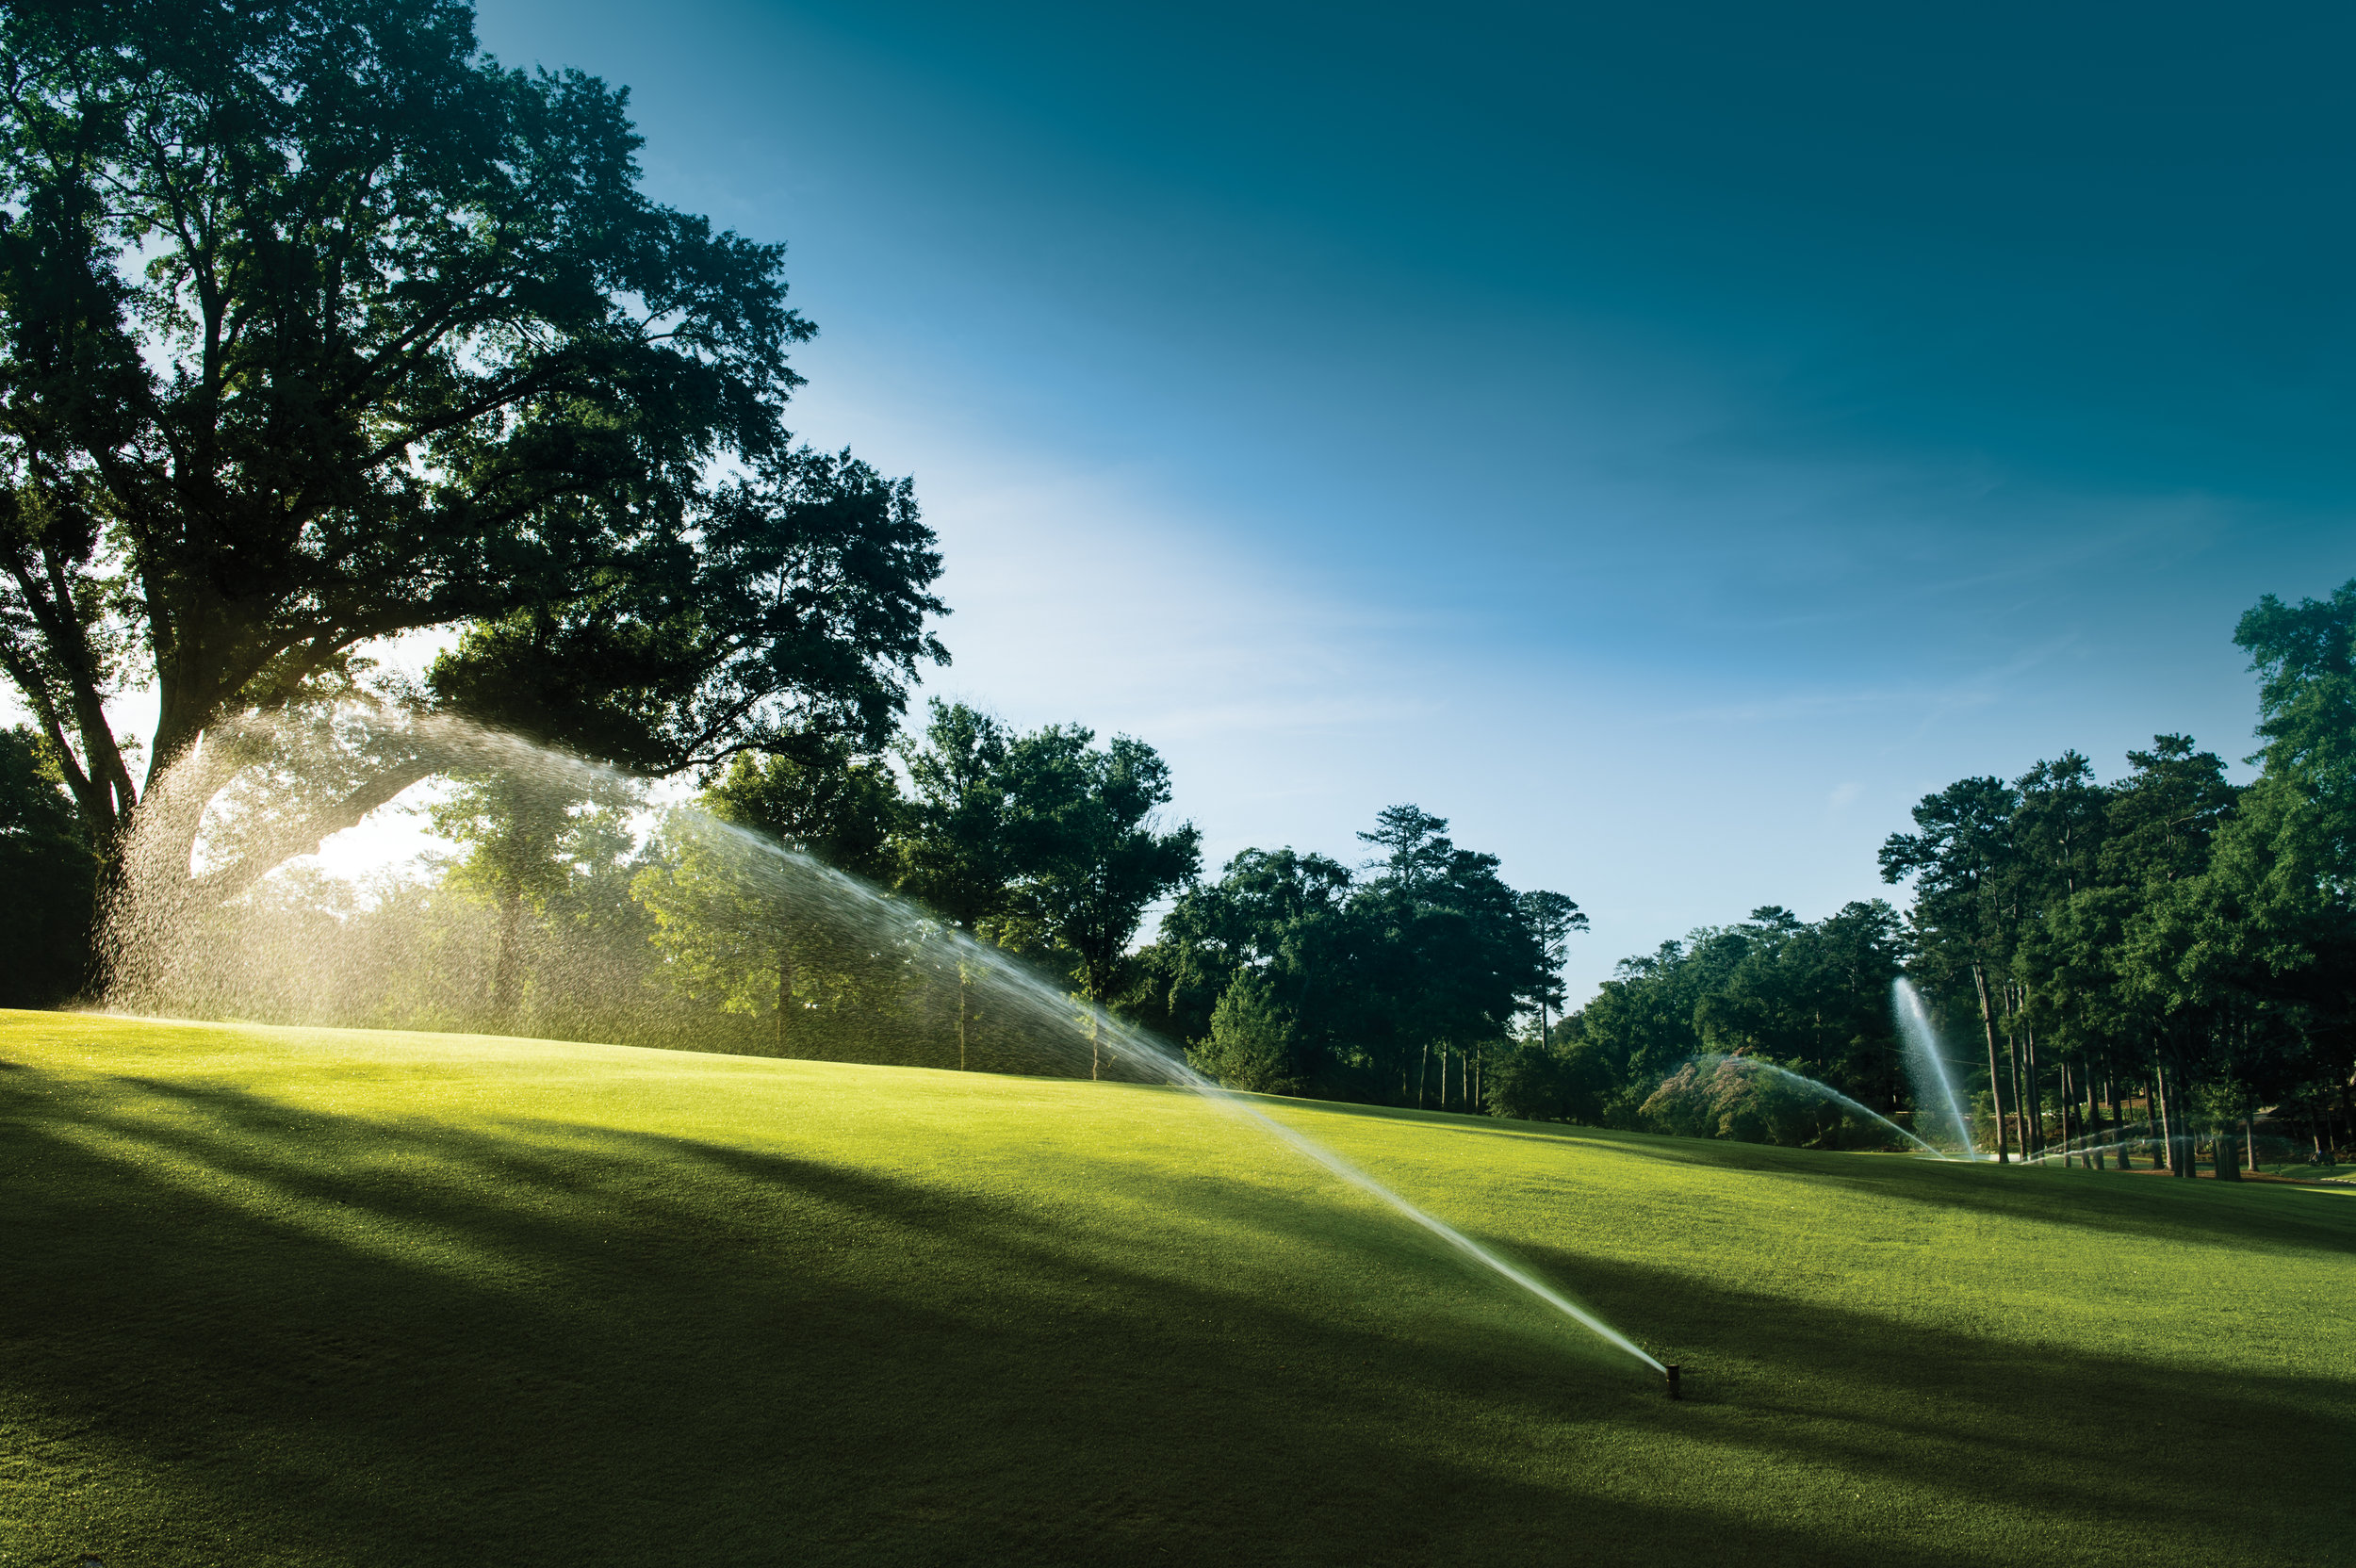 Our Happy Clients - With both residential and commercial customers, ABC Irrigation, Inc. can help you with the design, installation, and maintenance of a water conserving irrigation system while keeping you within your budget.